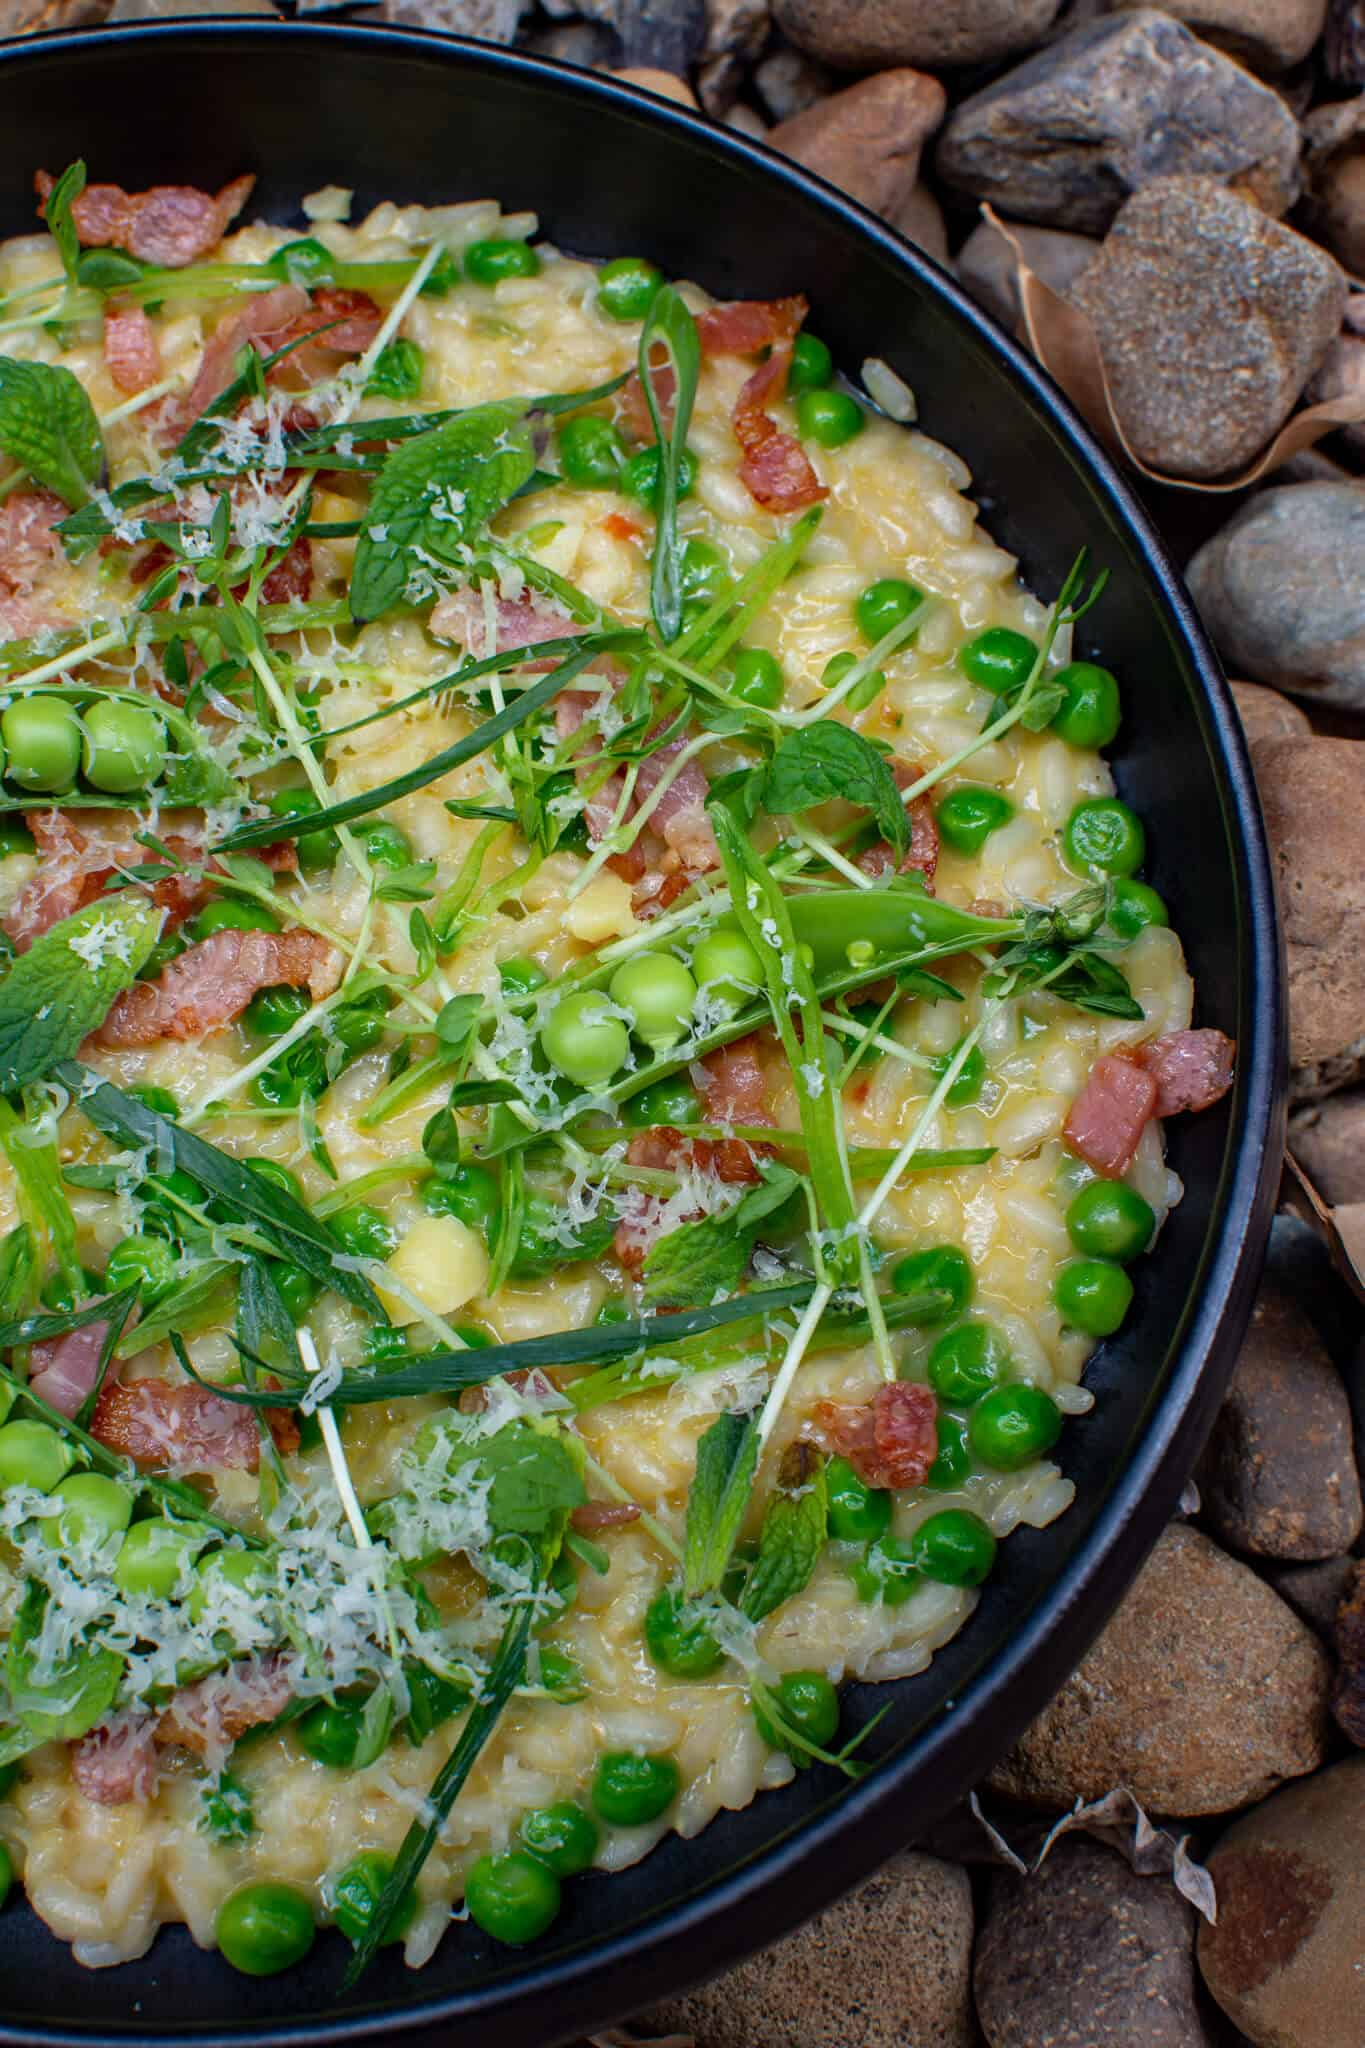 pea & bacon risotto in a black bowl on top of loads of stones